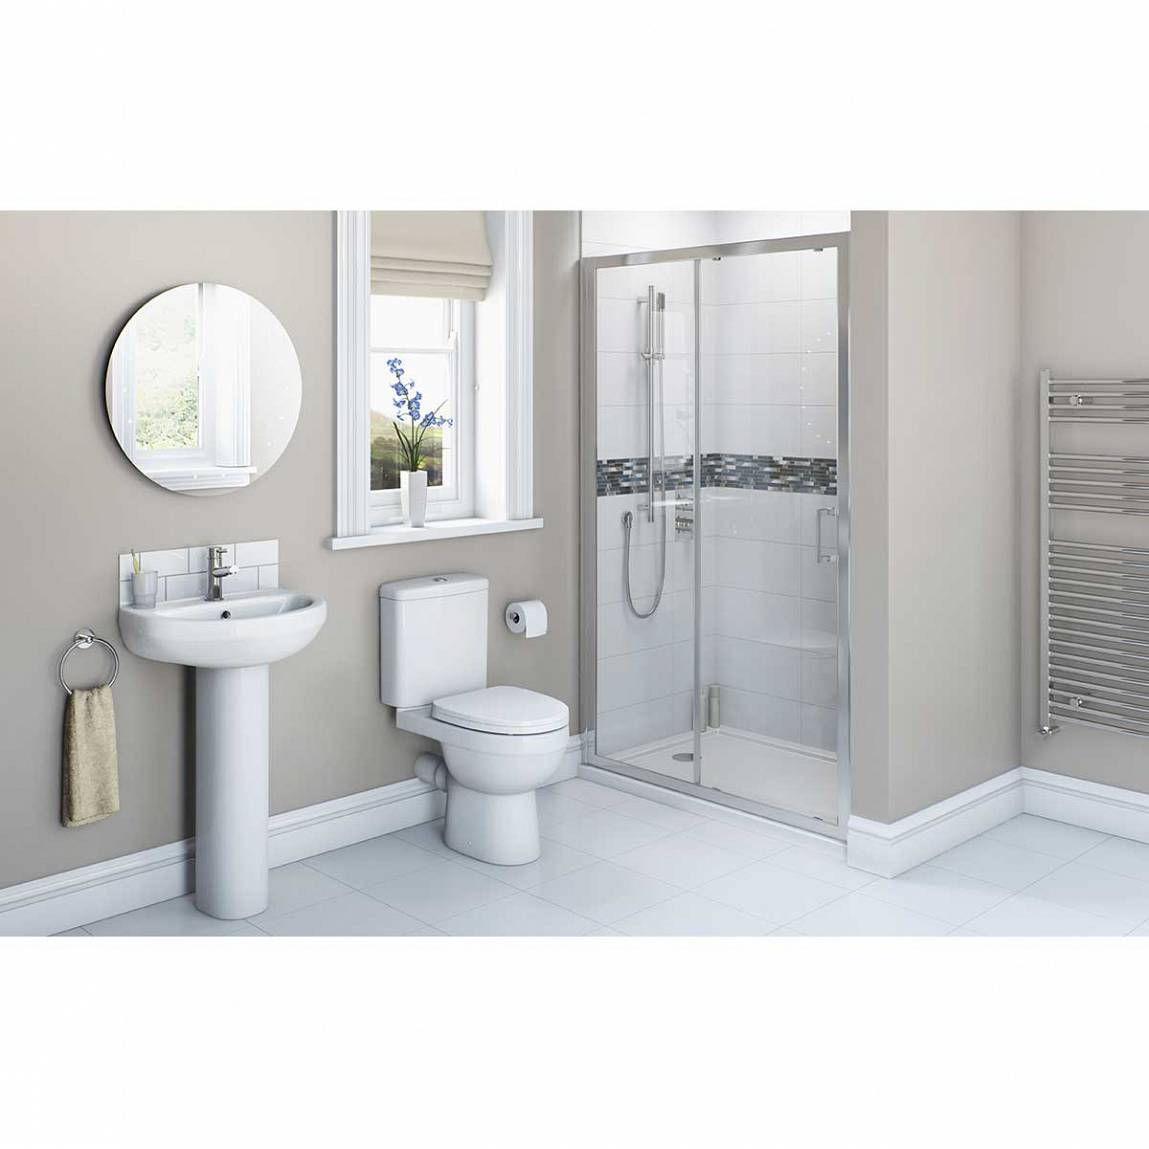 Image of Energy Bathroom set with 1600 Sliding Shower Door